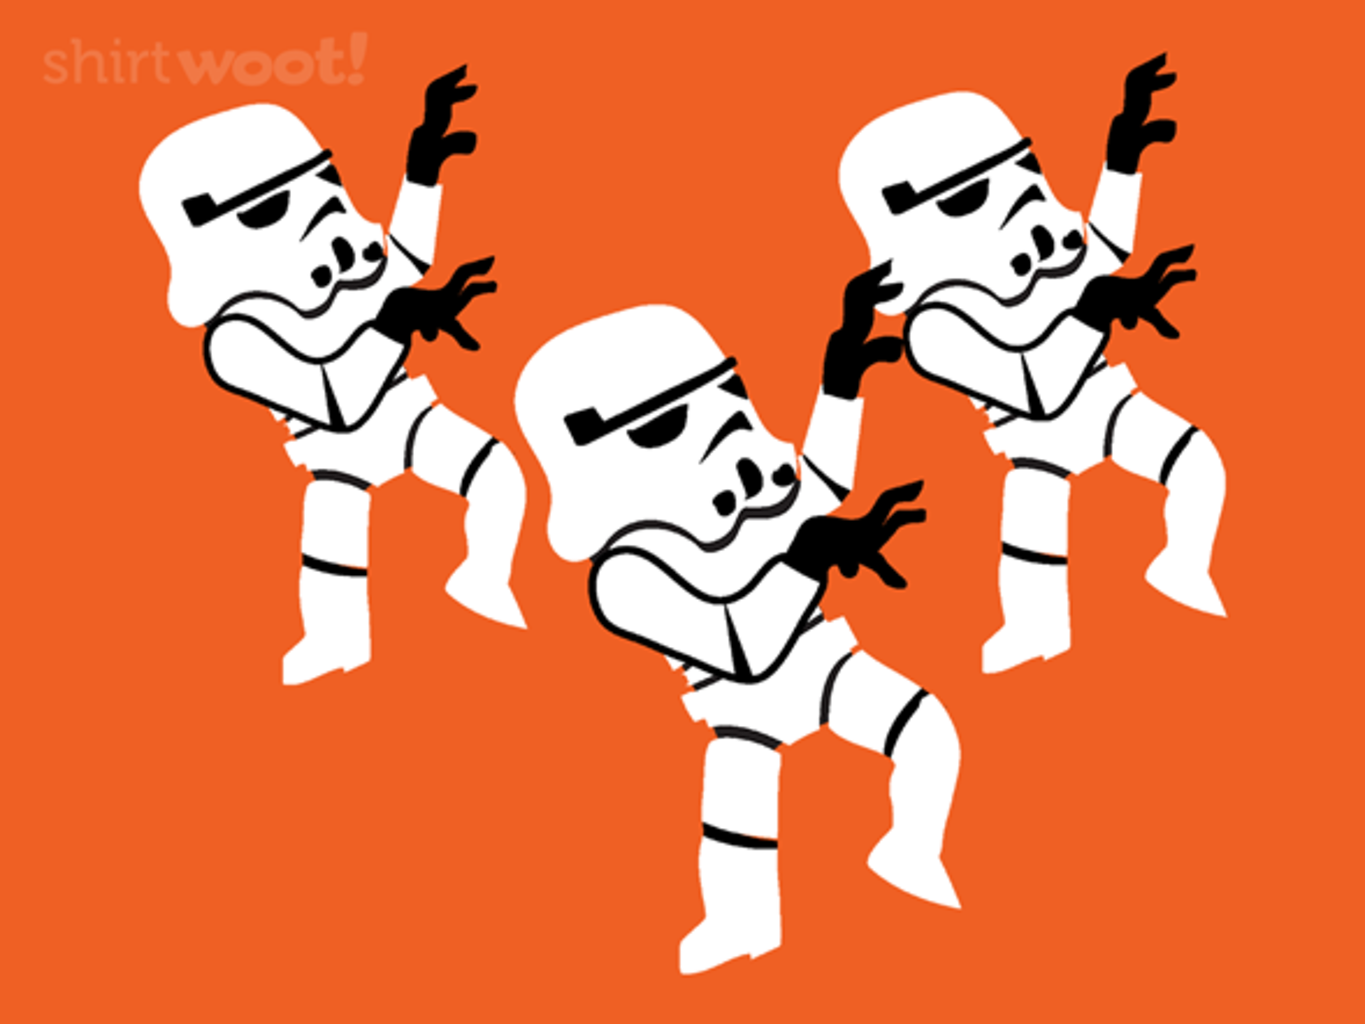 Woot!: Thriller Troopers